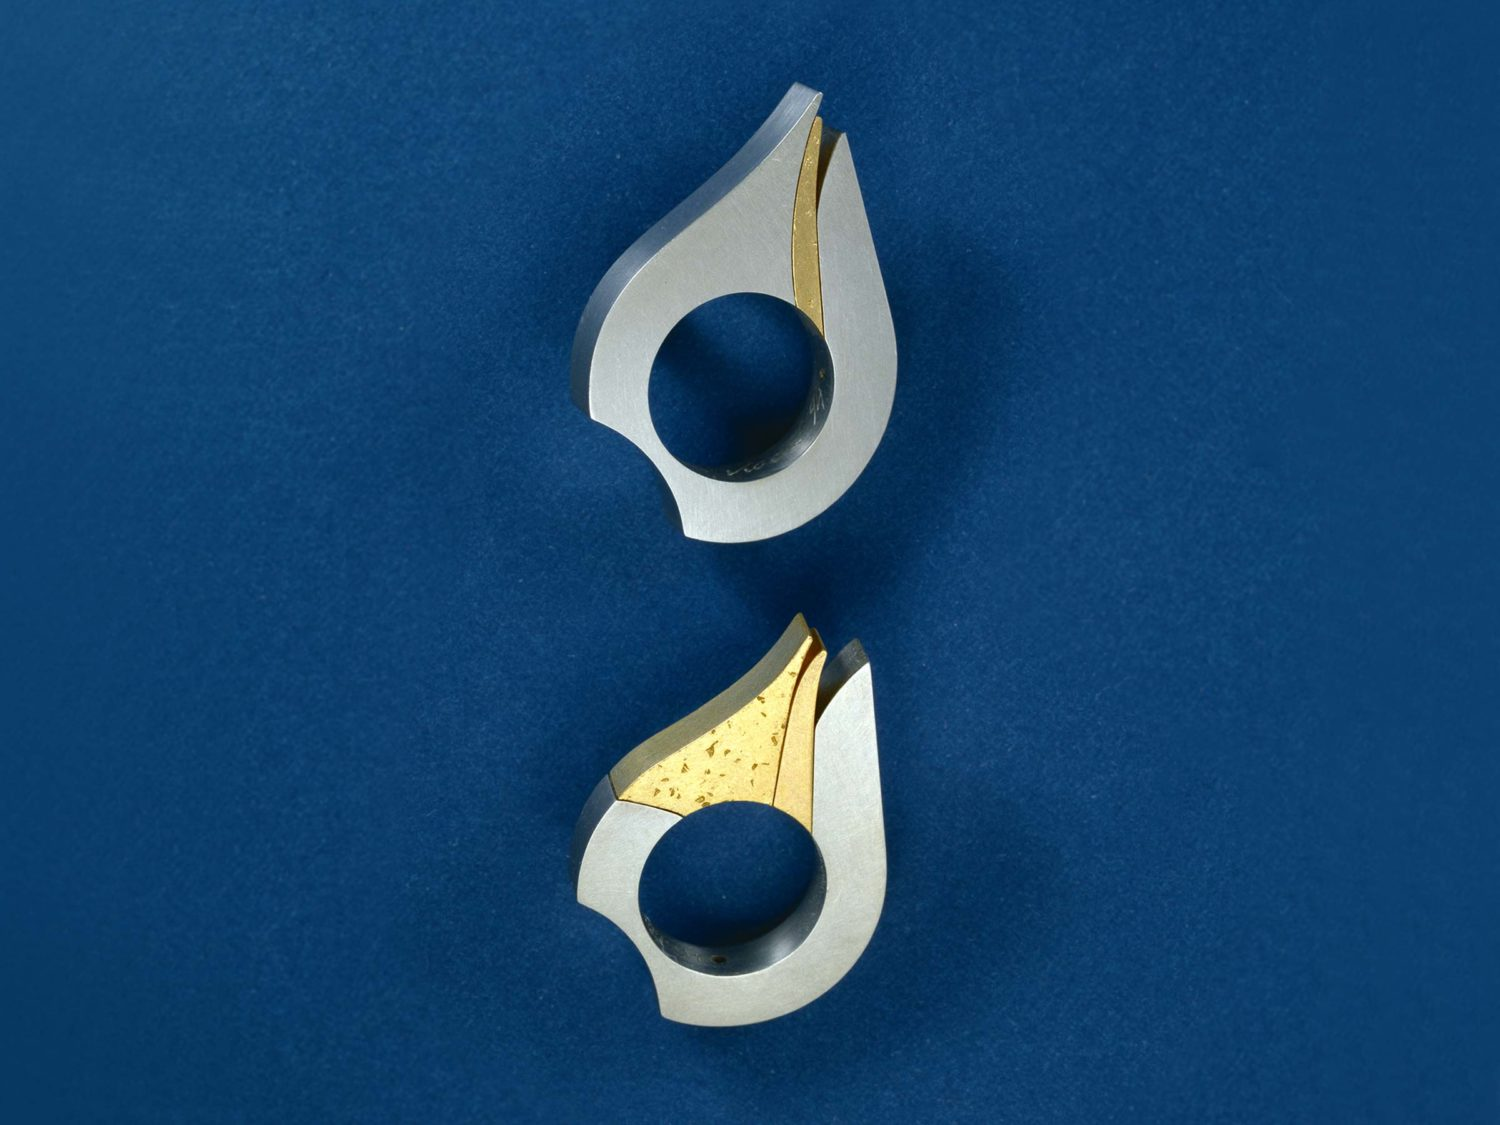 TWO RINGS, WHITE GOLD, GOLD, 1994/95